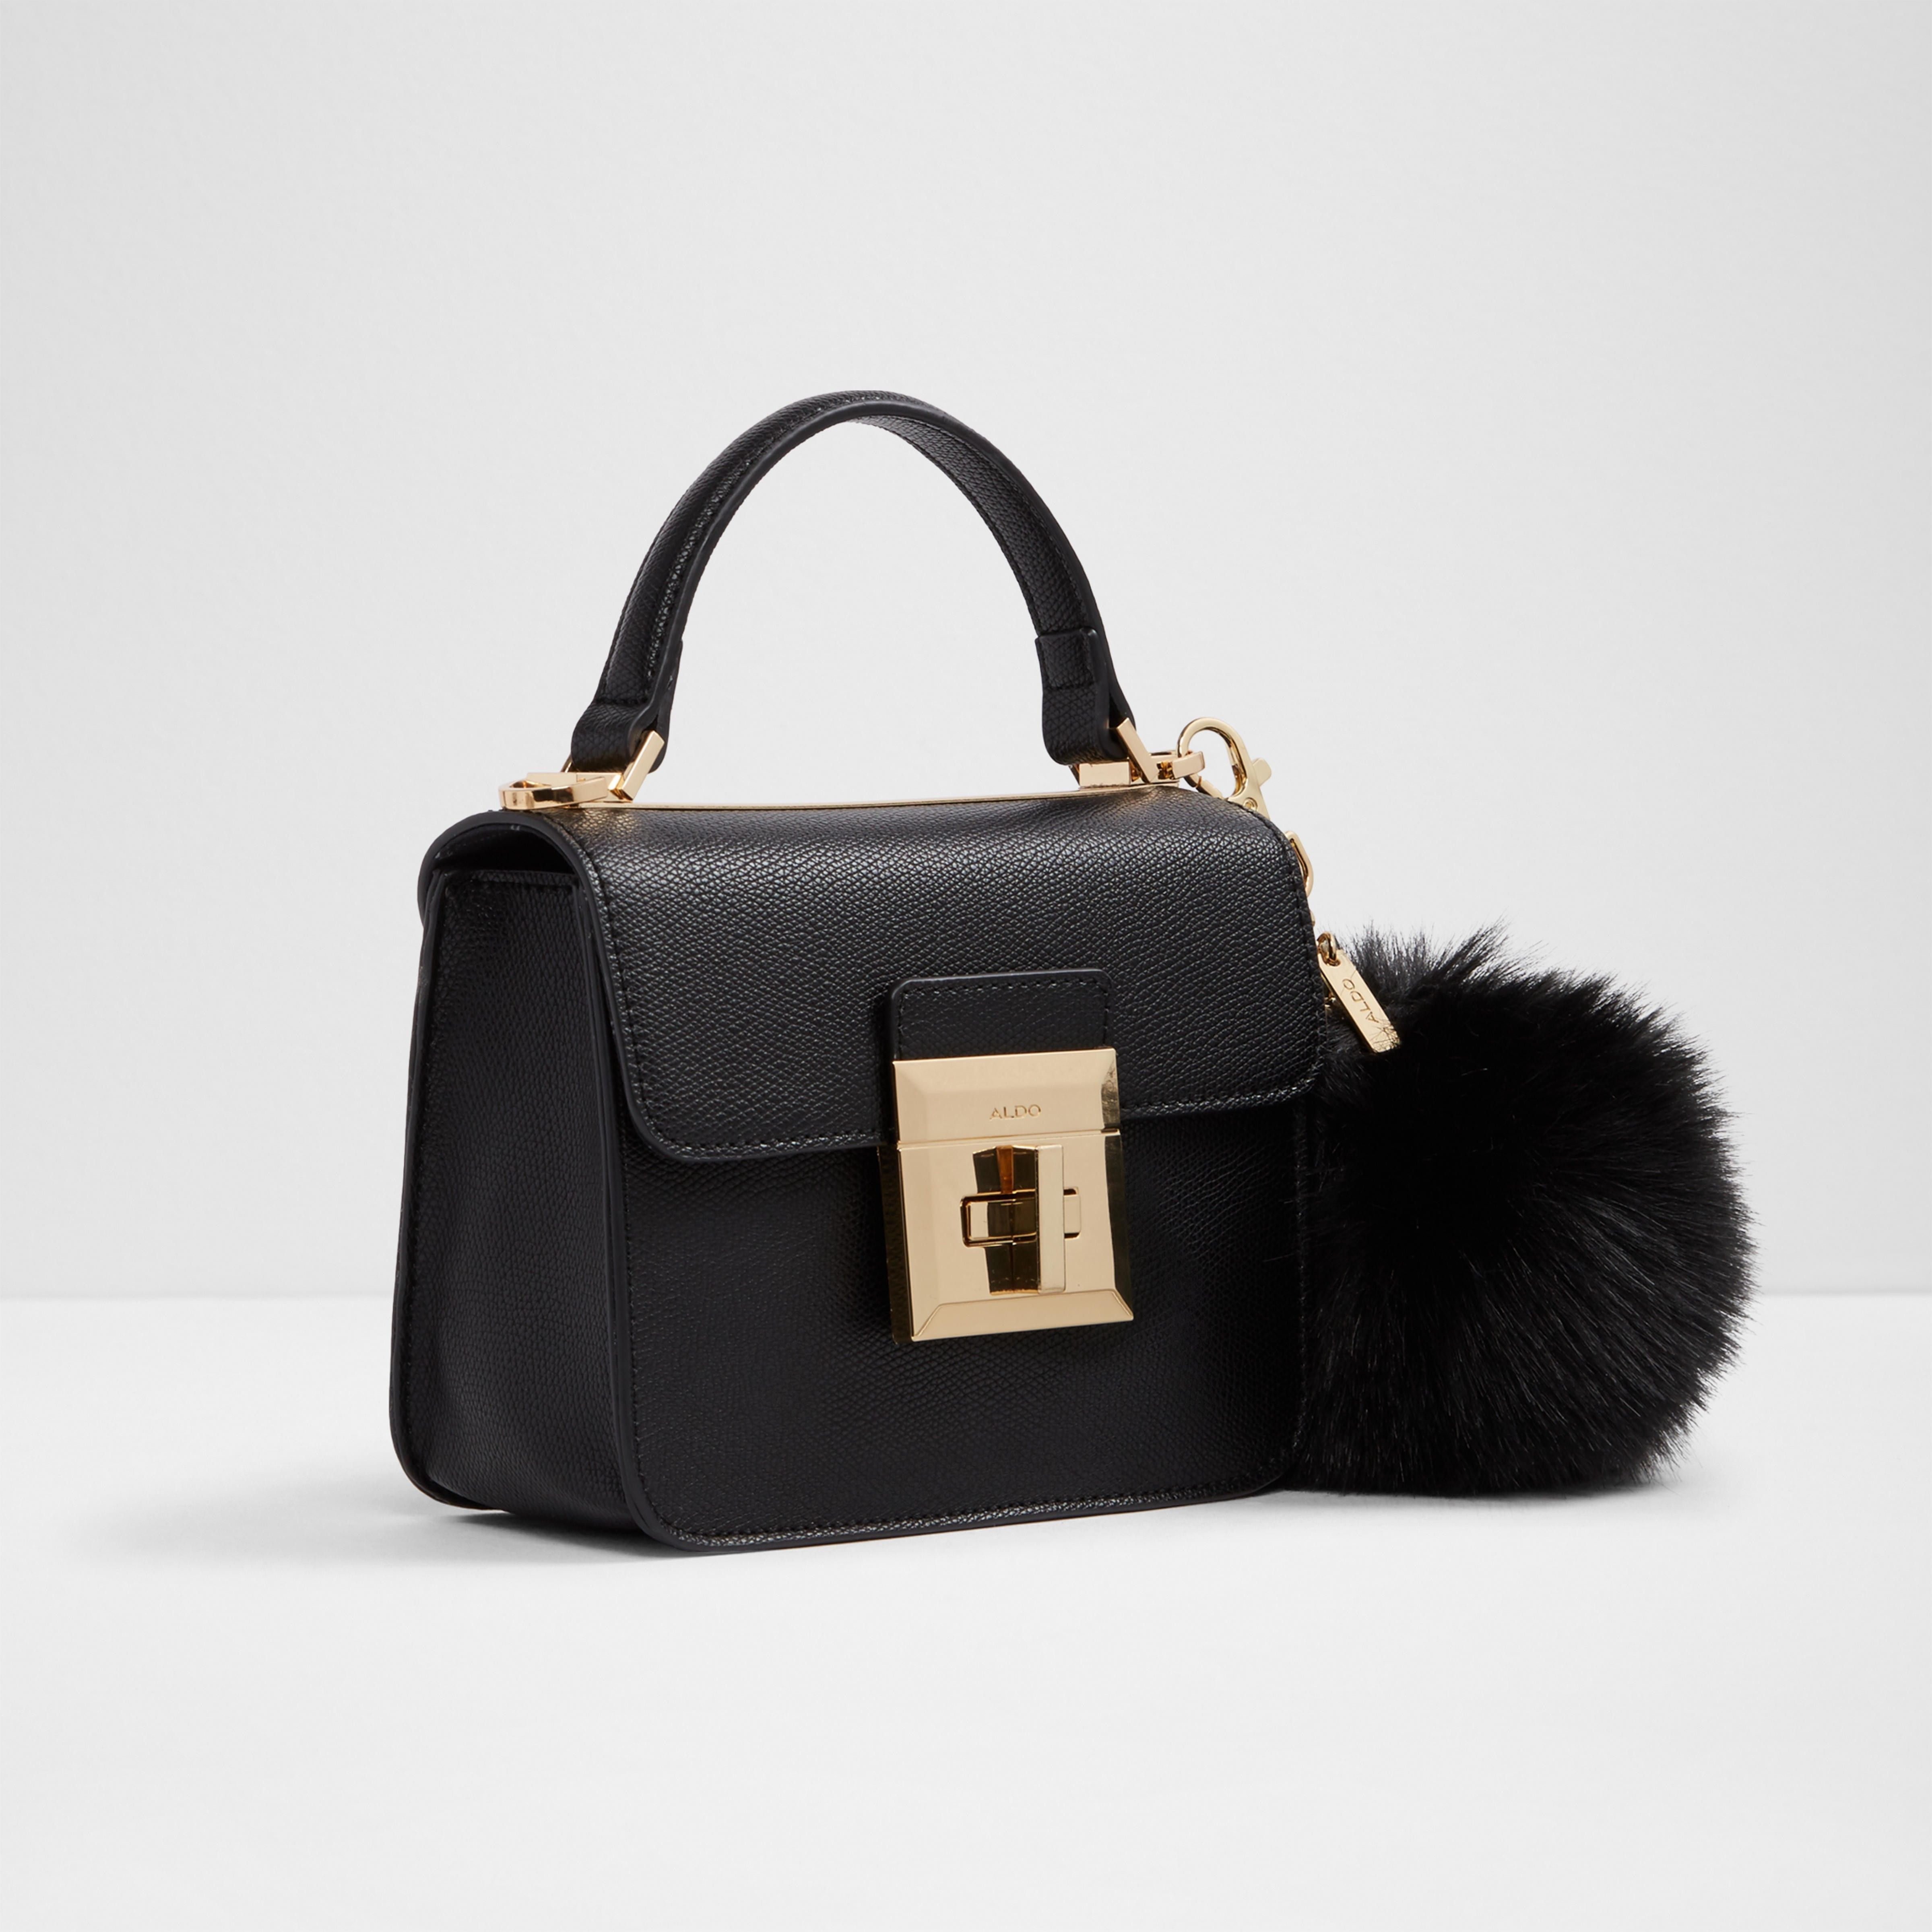 c9df3c0e2af Aldo Chiadda - Midnight Black Mini Bag